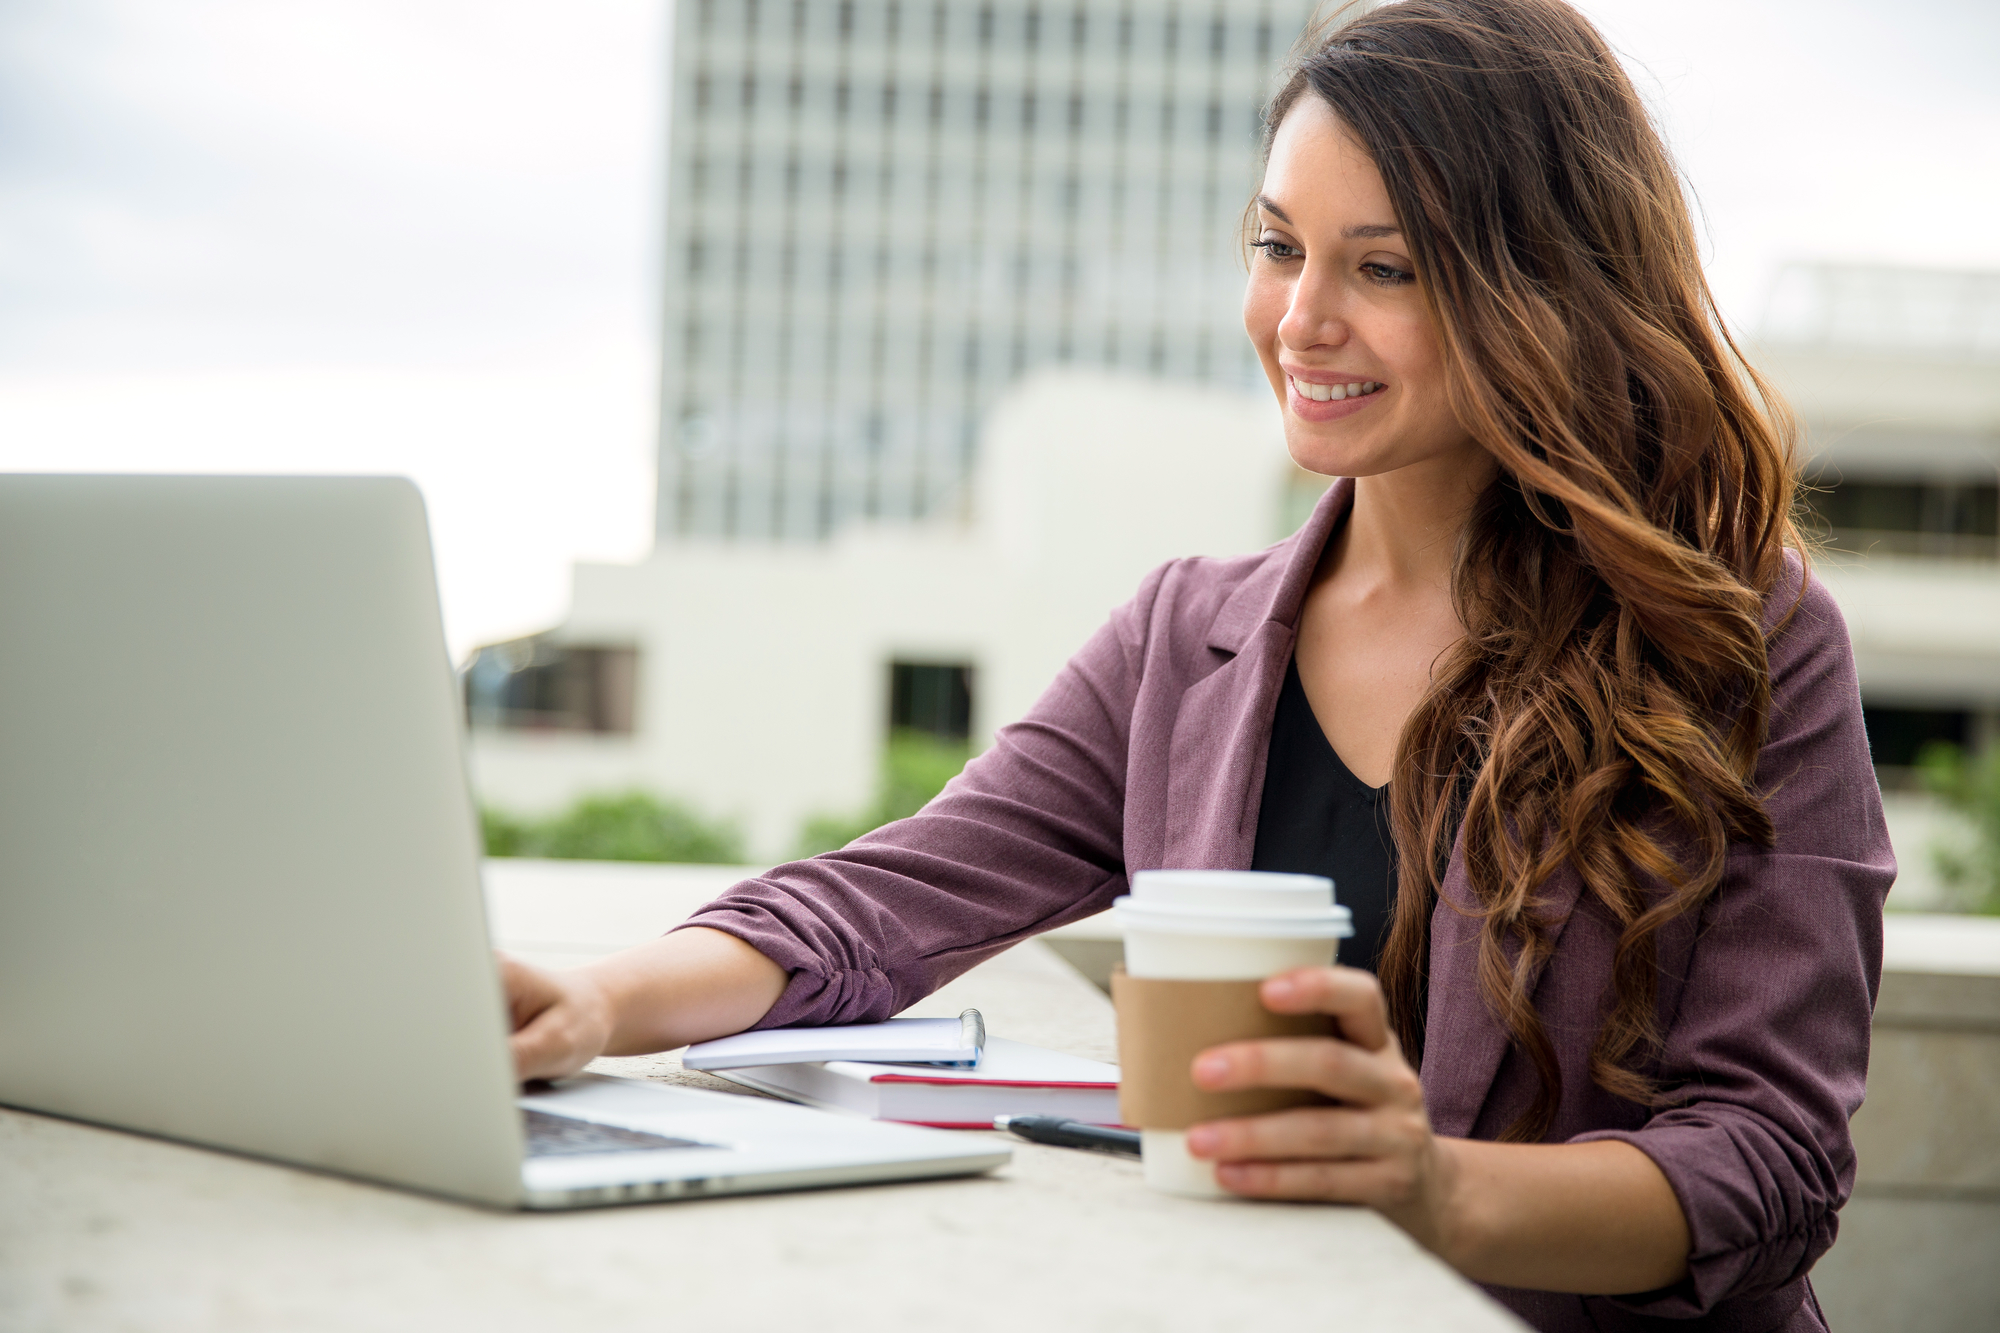 woman working on her laptop. How to save money when you have no money to save